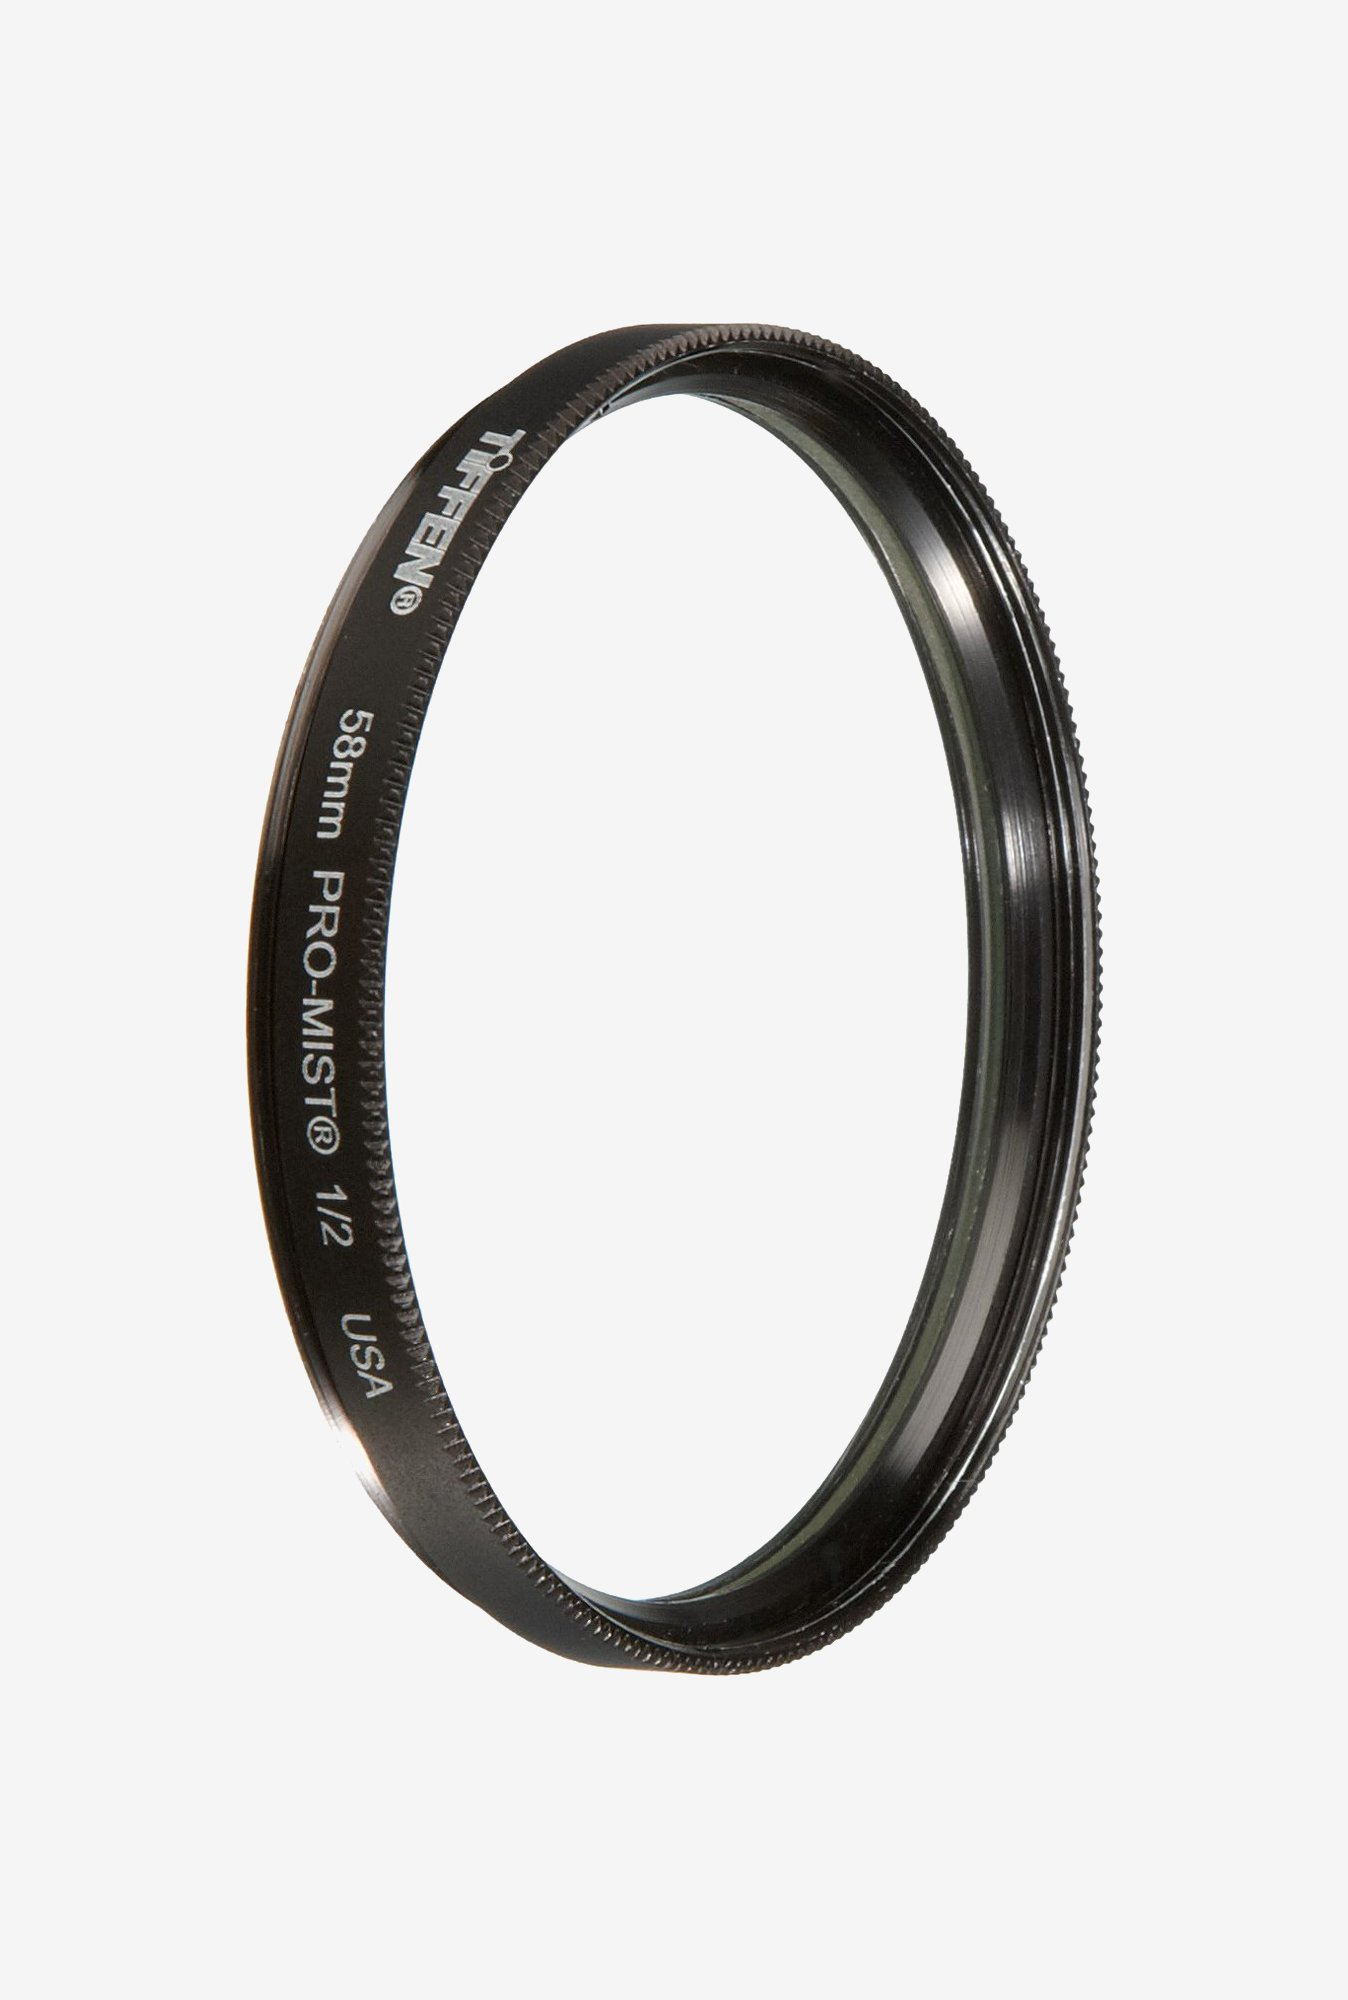 Tiffen 58PM12 58mm Pro-Mist 1/2 Filter (Black)